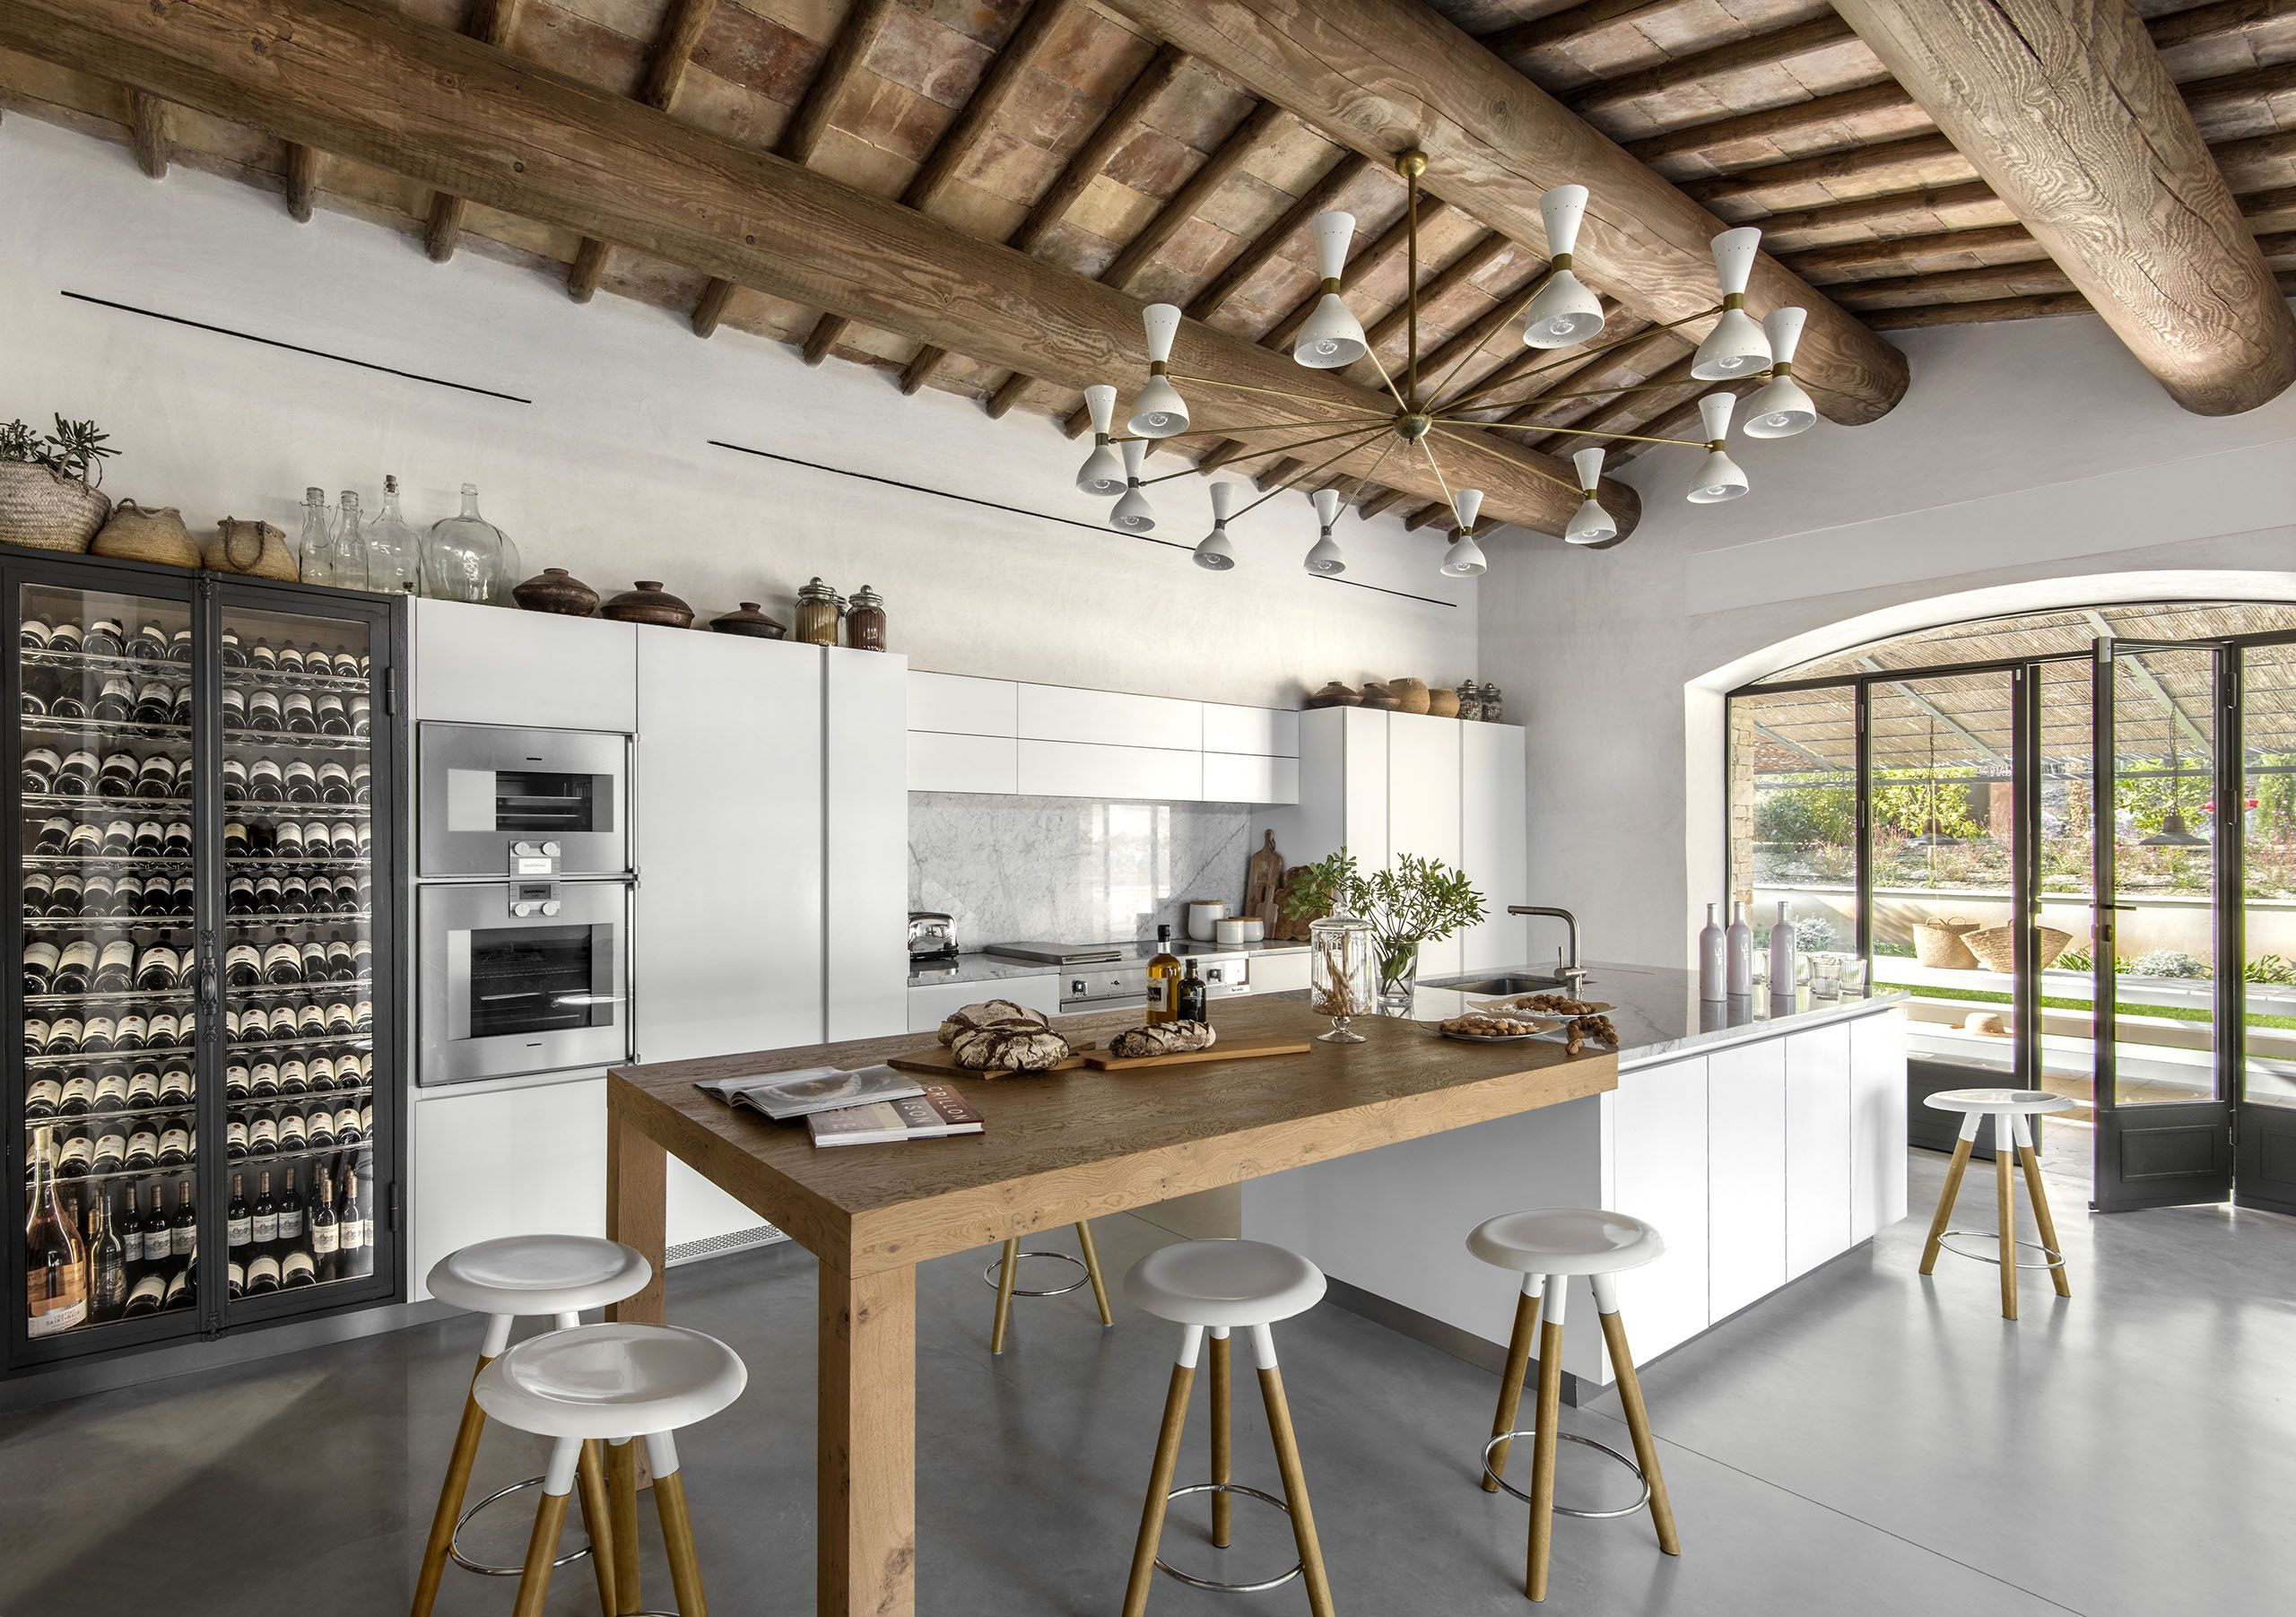 Cuisine îlot central : 12 photos de cuisinistes | Lofts, Kitchens ...